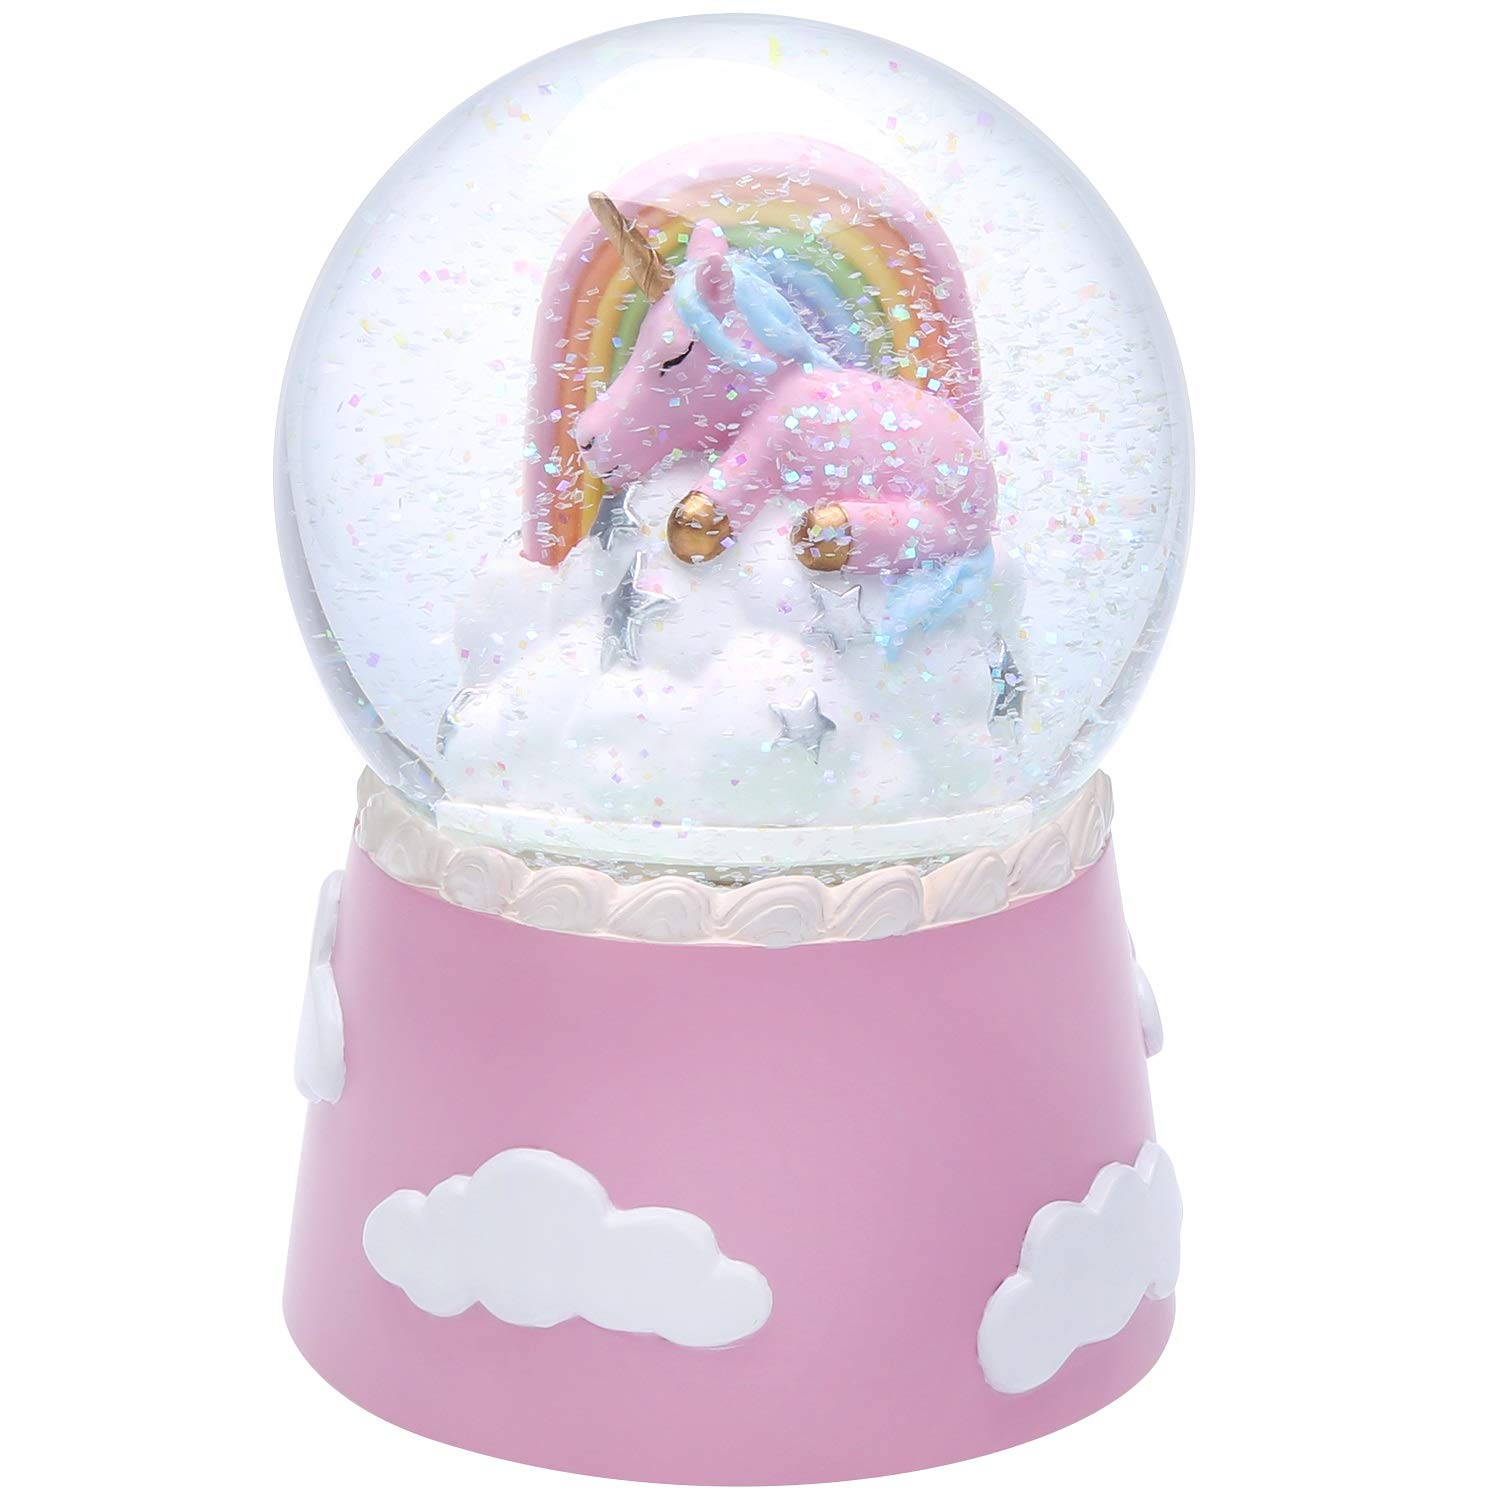 J JHOUSELIFESTYLE Unicorn Snow Globe for Kids, Sleeping Unicorn Rotating Inside as Music Plays, Perfect Unicorn Music Box for Girls, Granddaughters Babies Birthday - Pink by J JHOUSELIFESTYLE